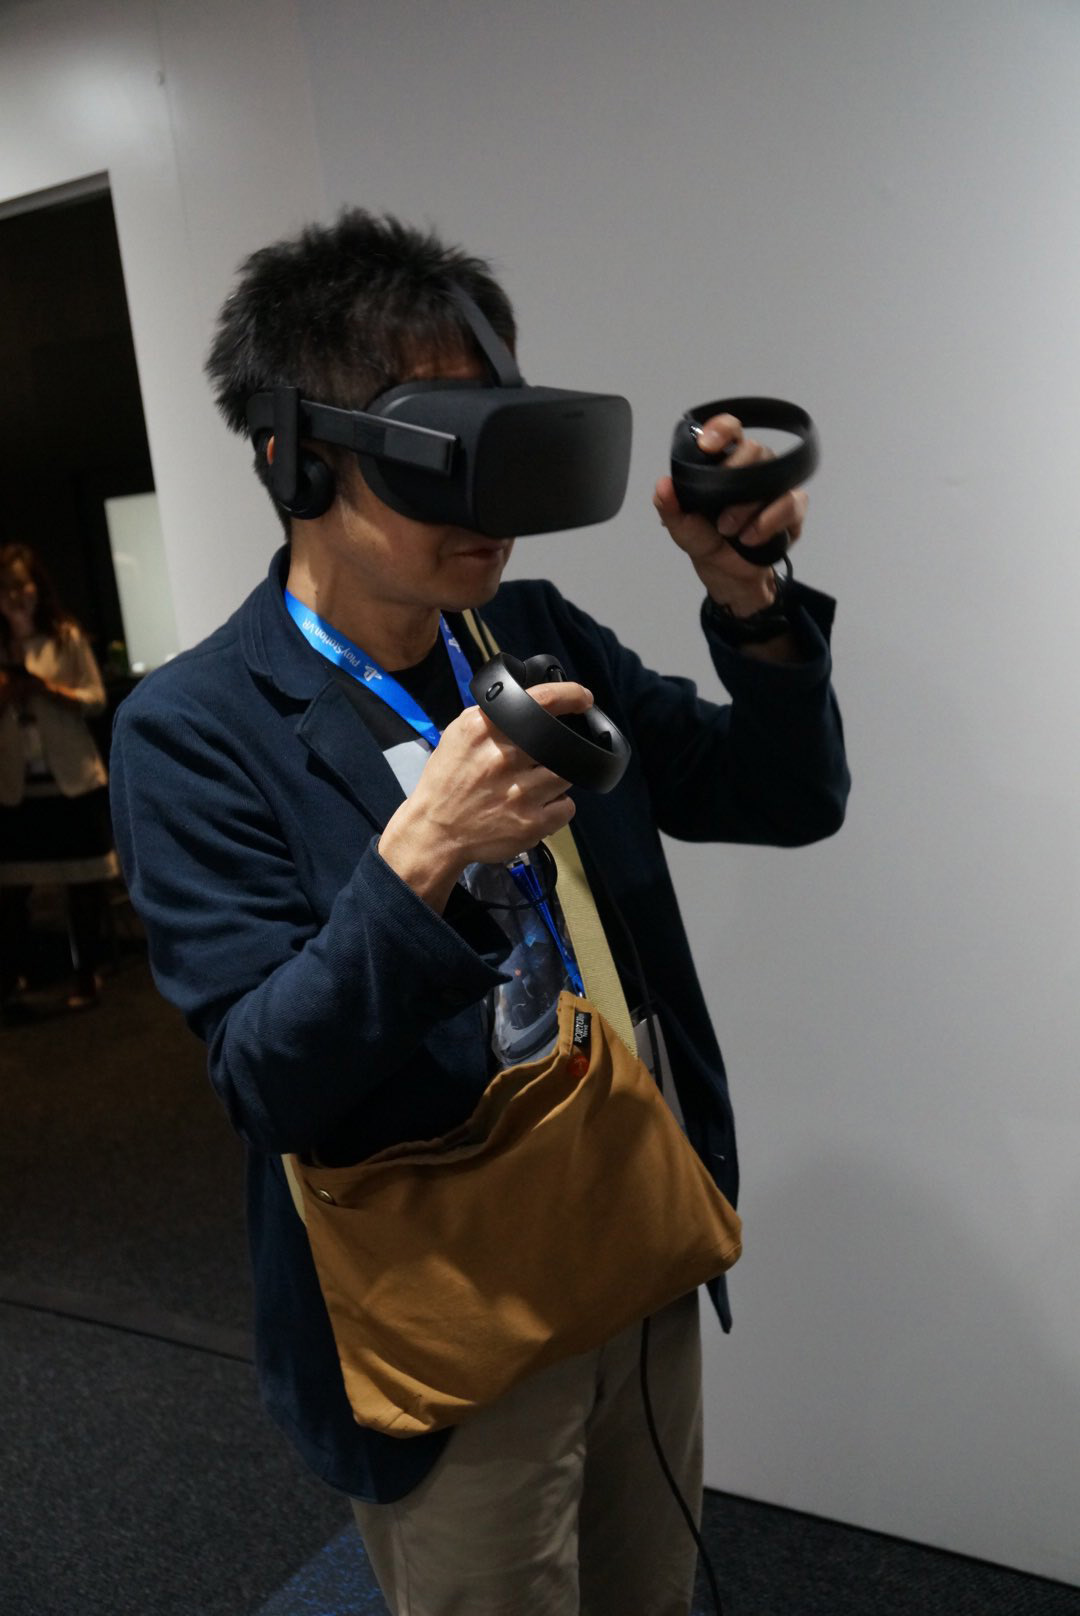 Kenji-Yano-playing-Oculus-Rift-at-E3-2016-1